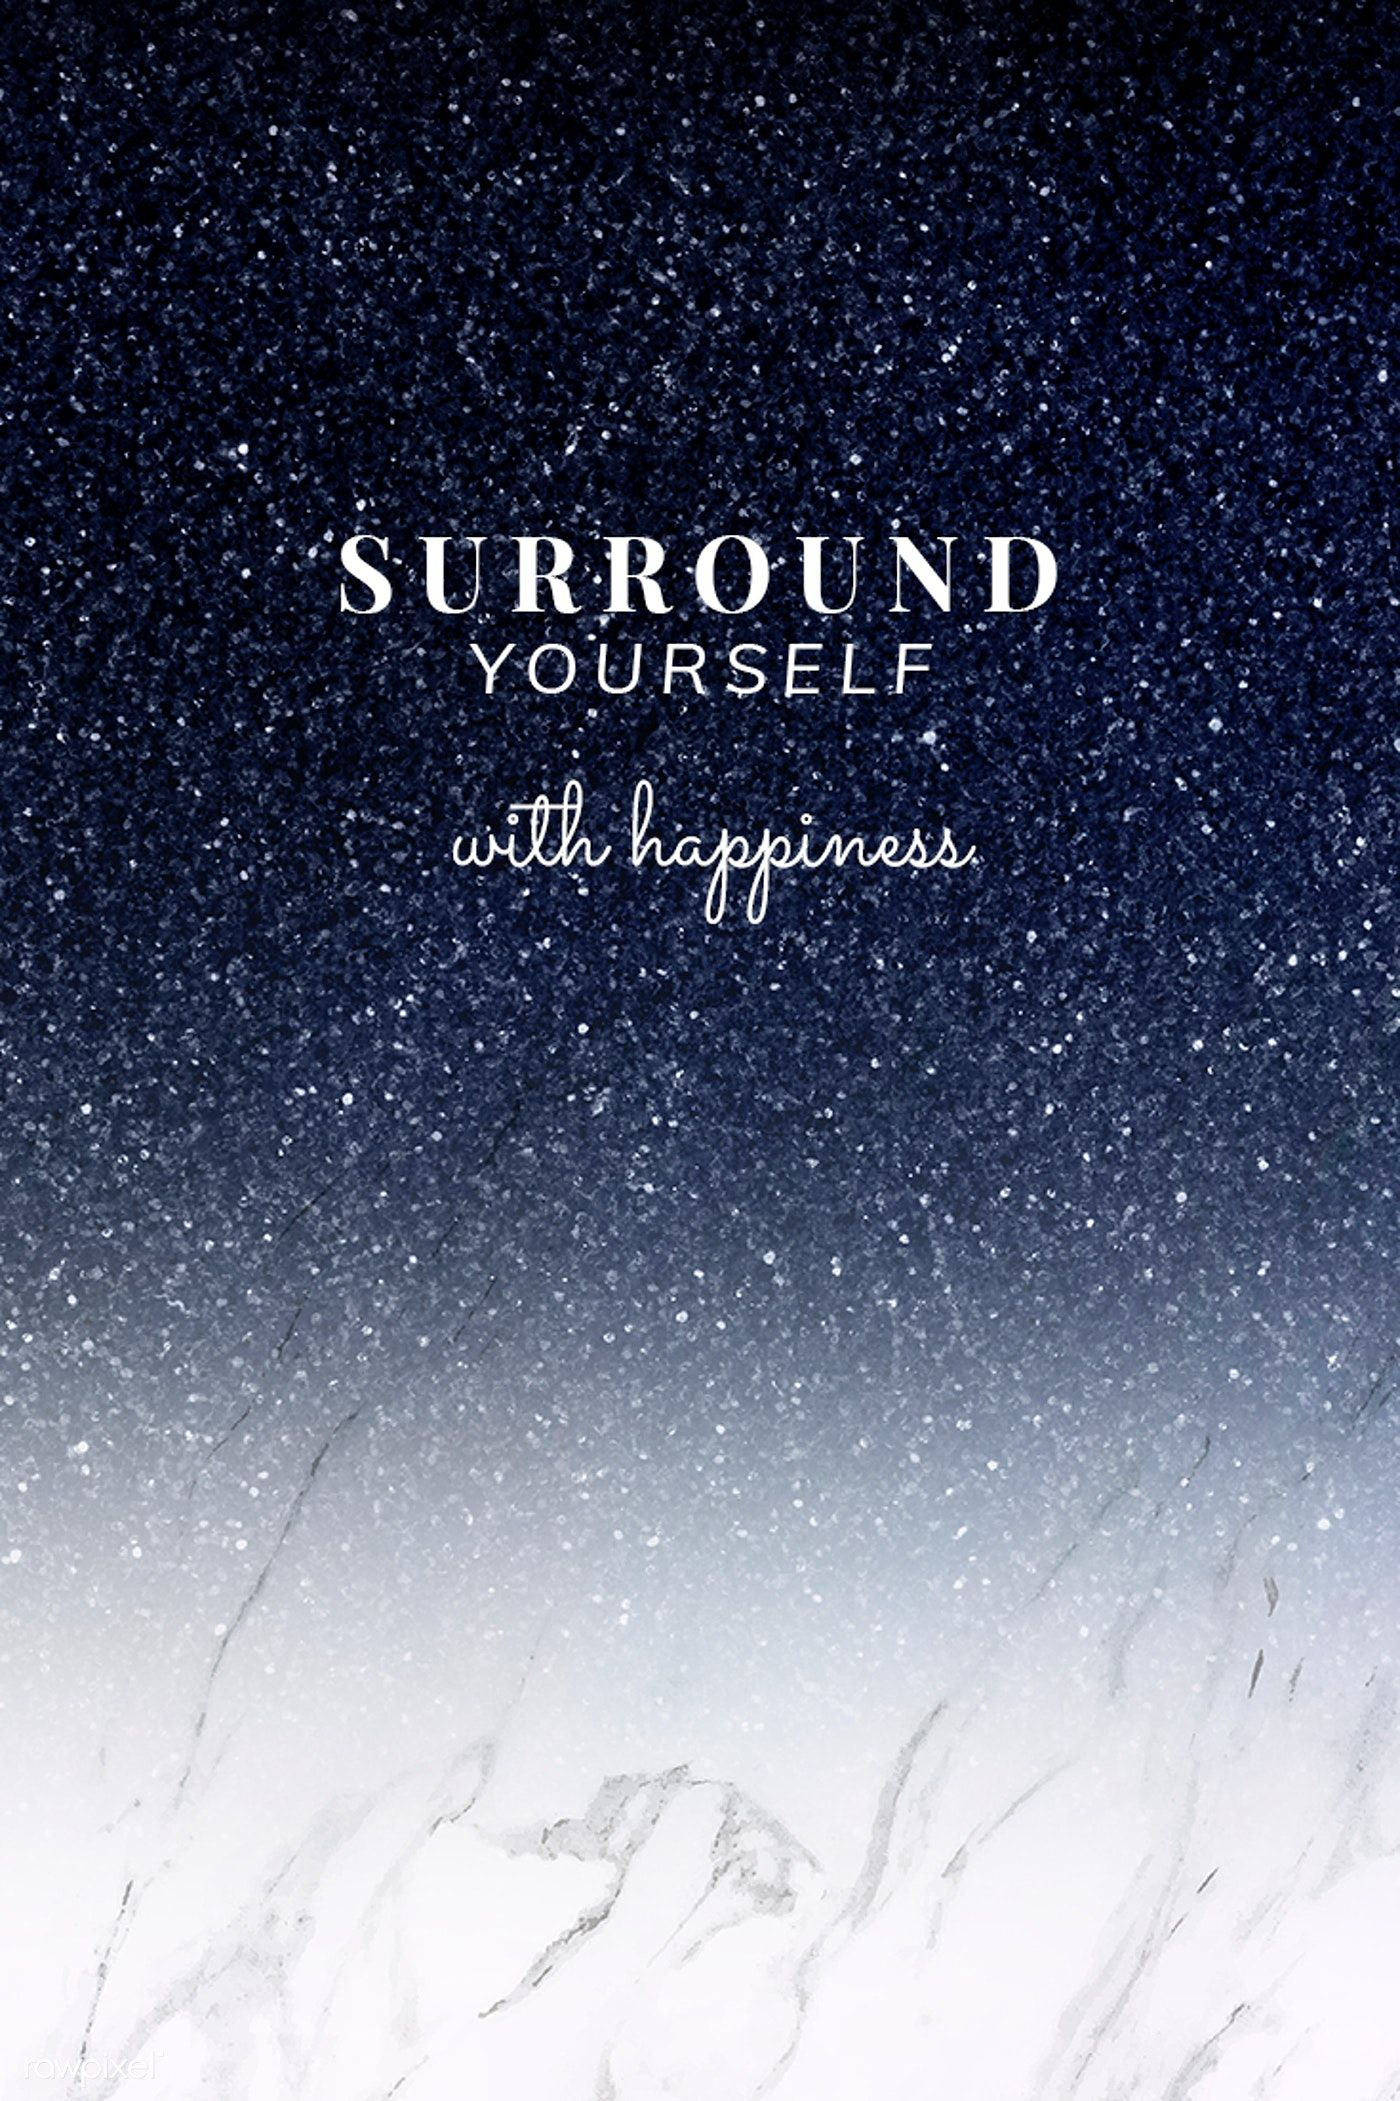 Surround yourself with happiness quote psd template  premium